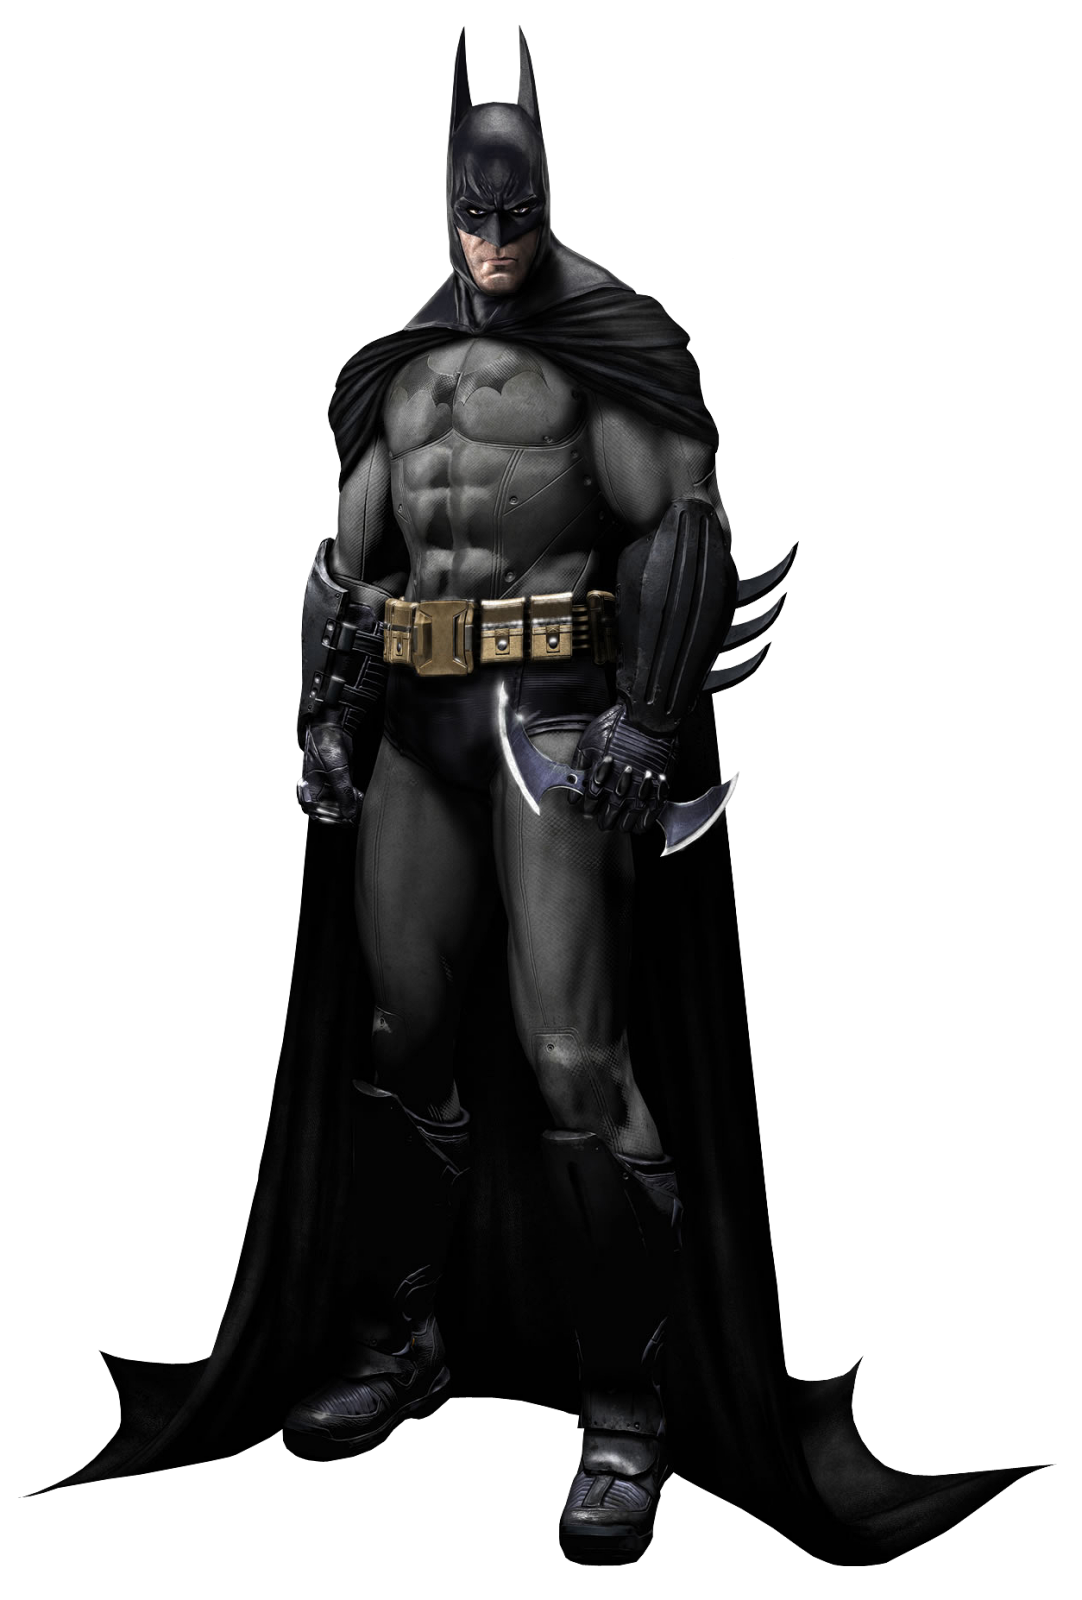 Batman PNG Transparent Image